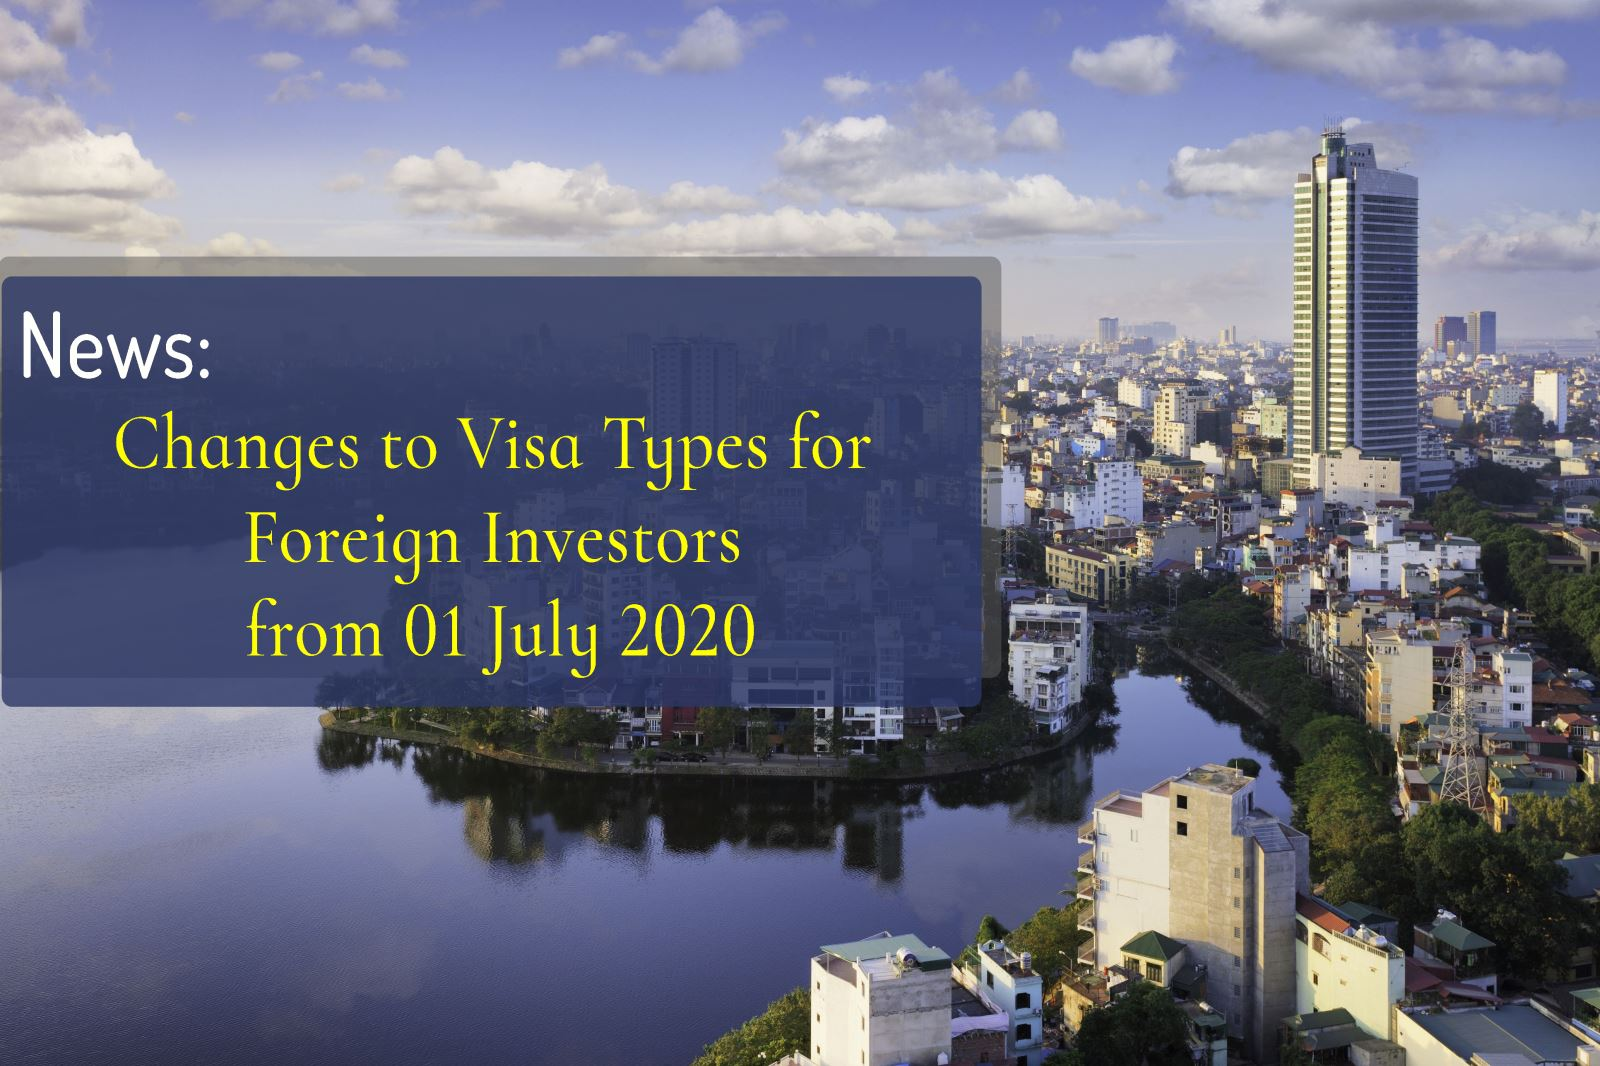 Changes to Visa Types for Foreign Investors from July 2020